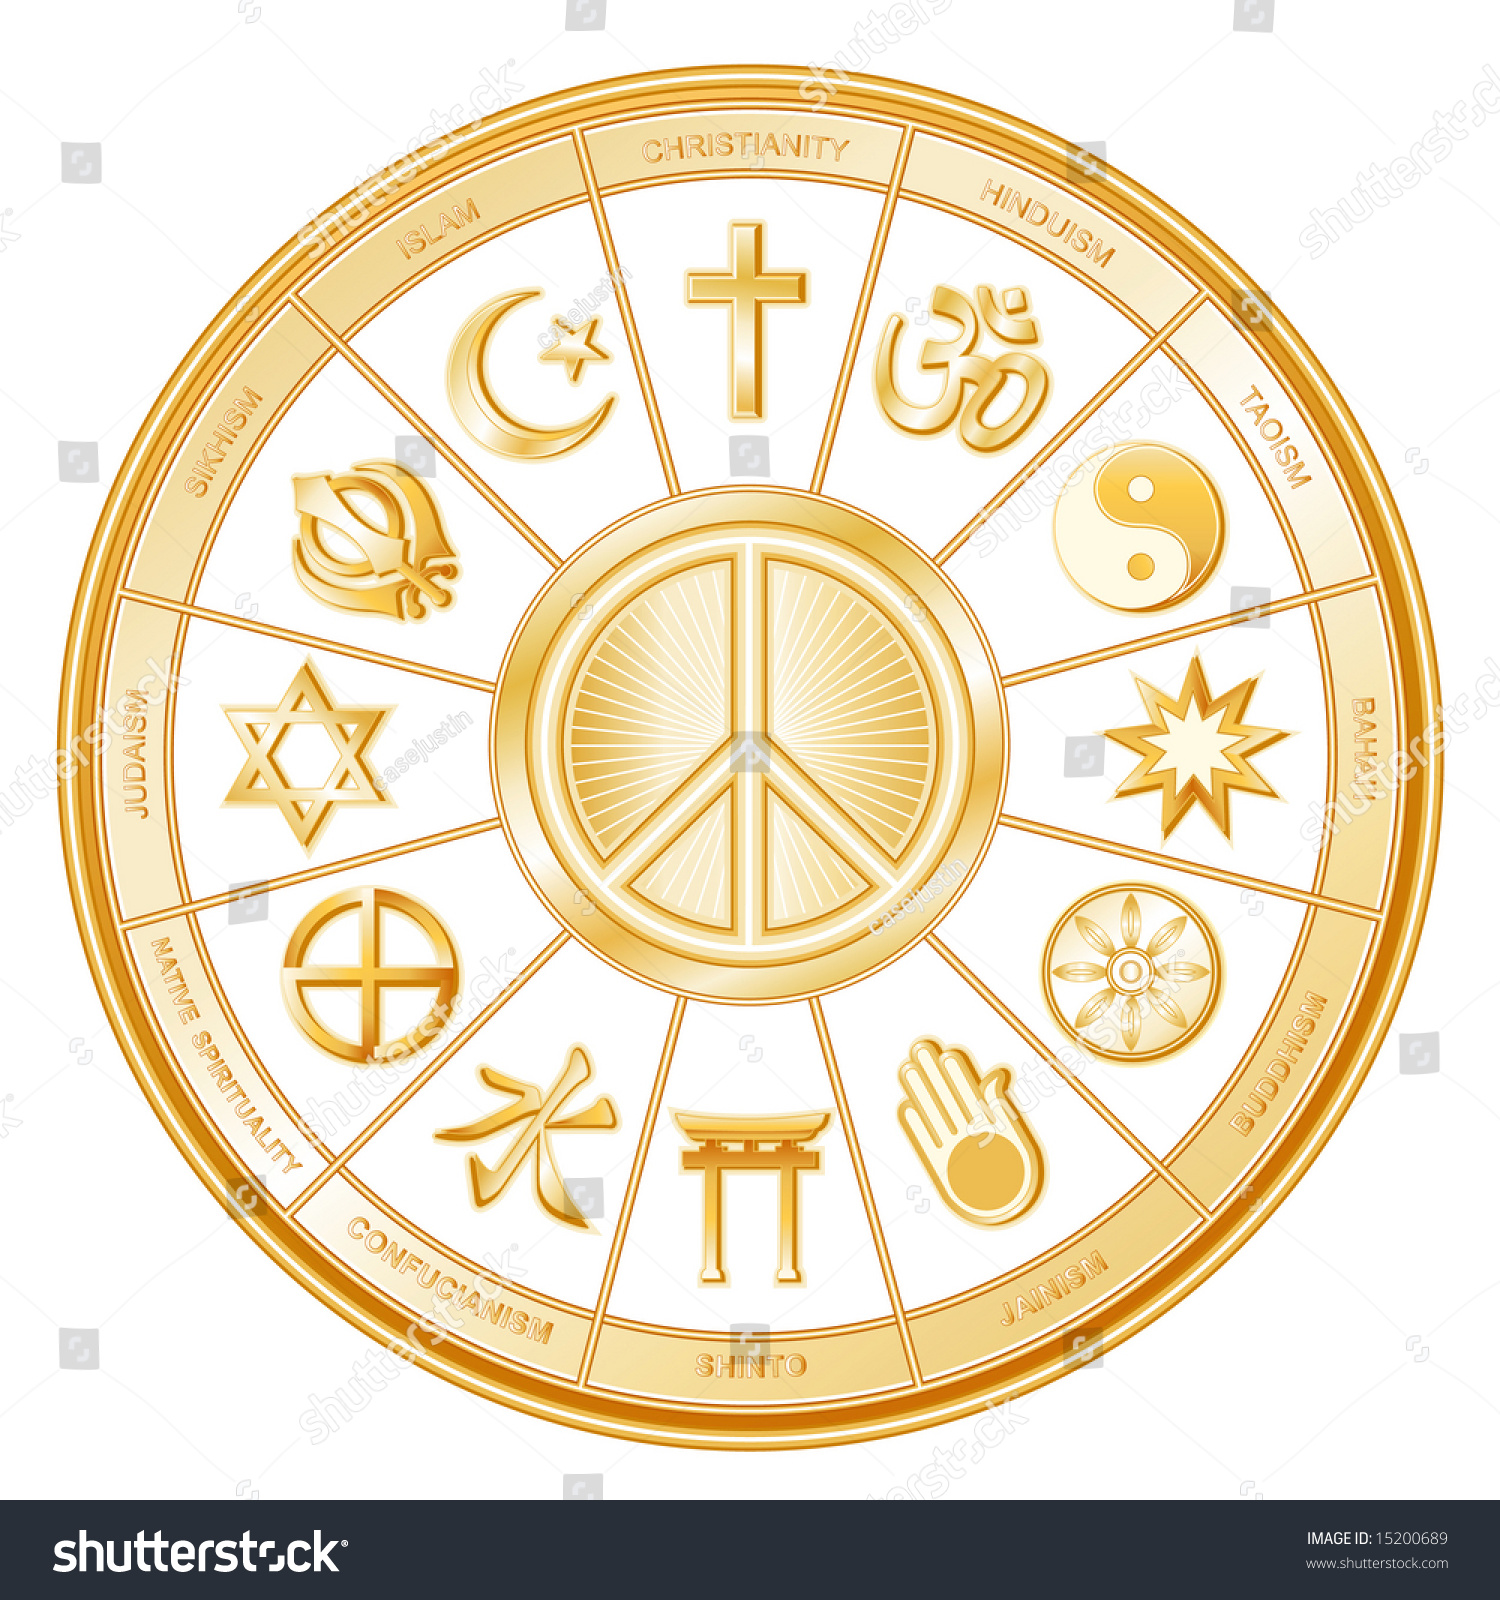 Czeshop Images Indian Religion Symbols With Names